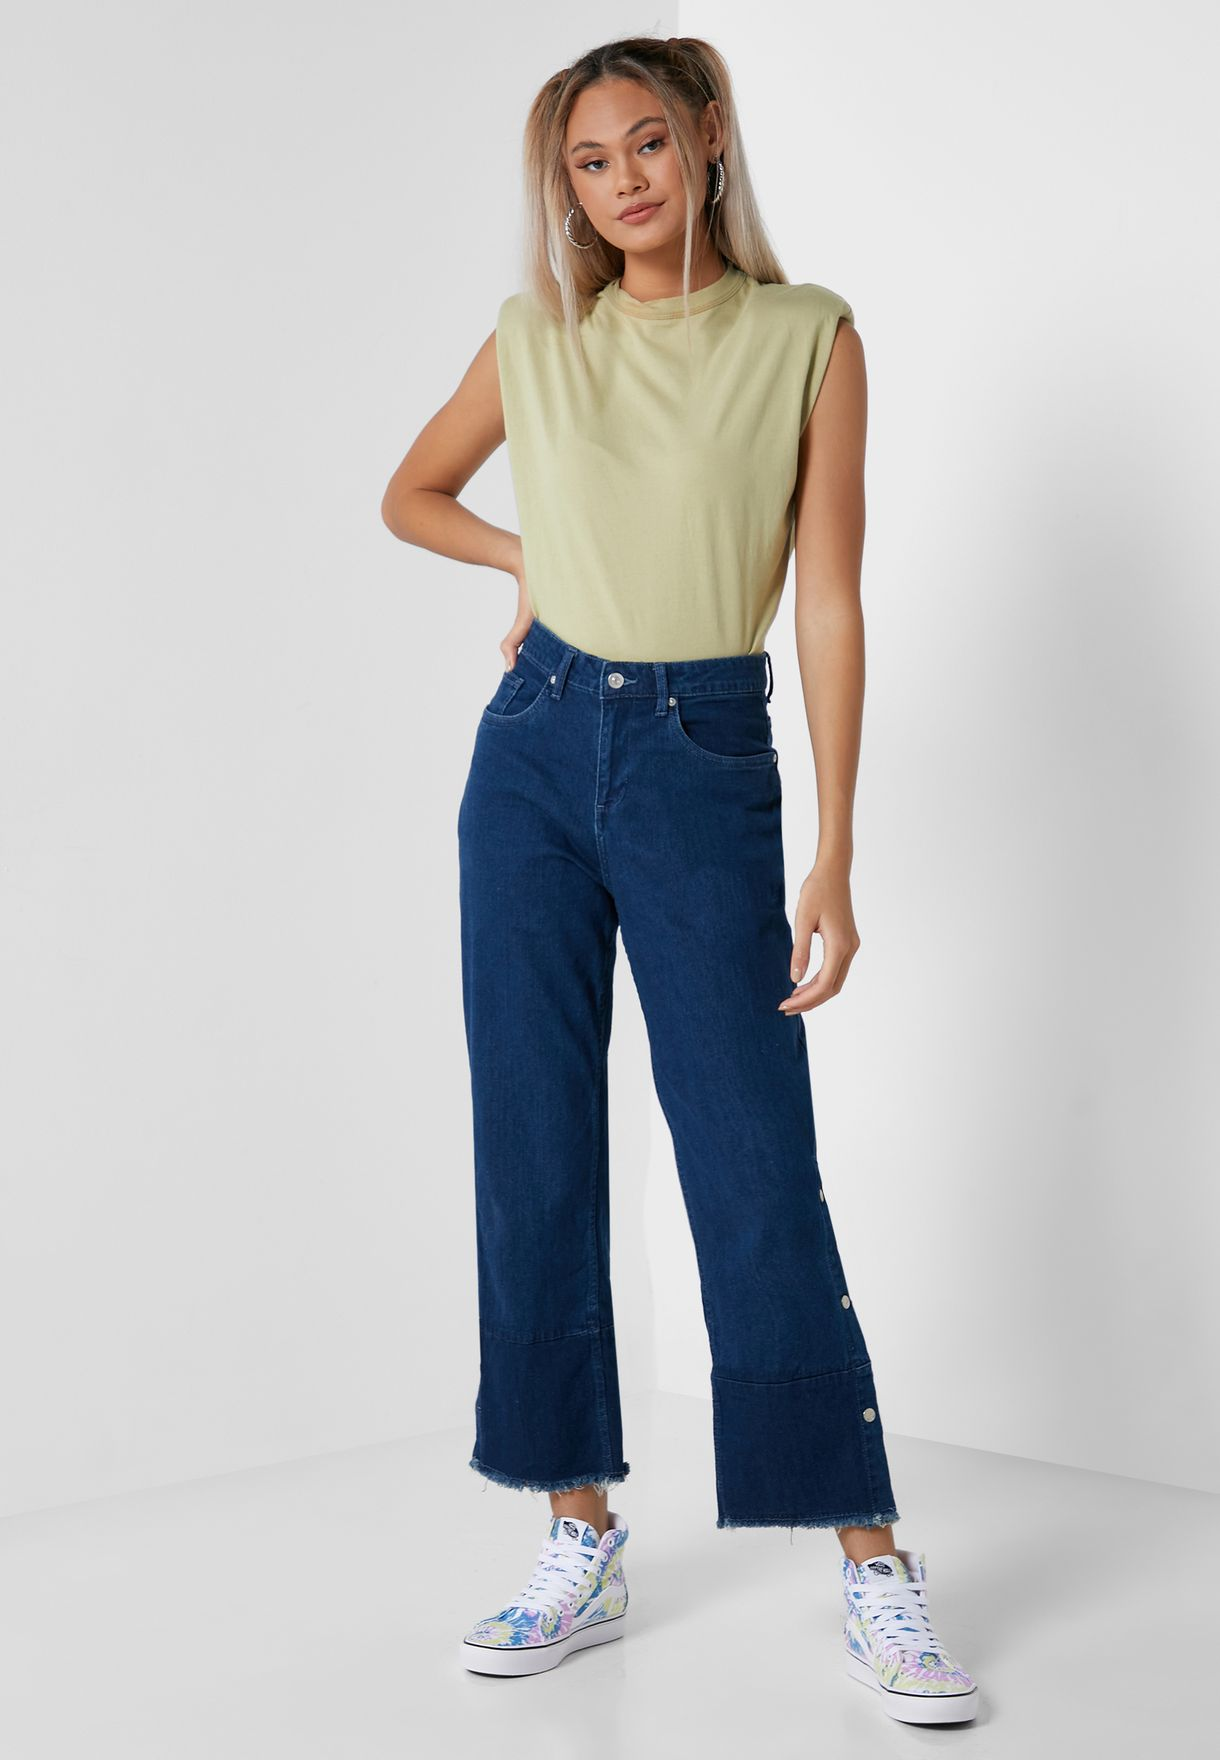 Contrast Coloured Jeans